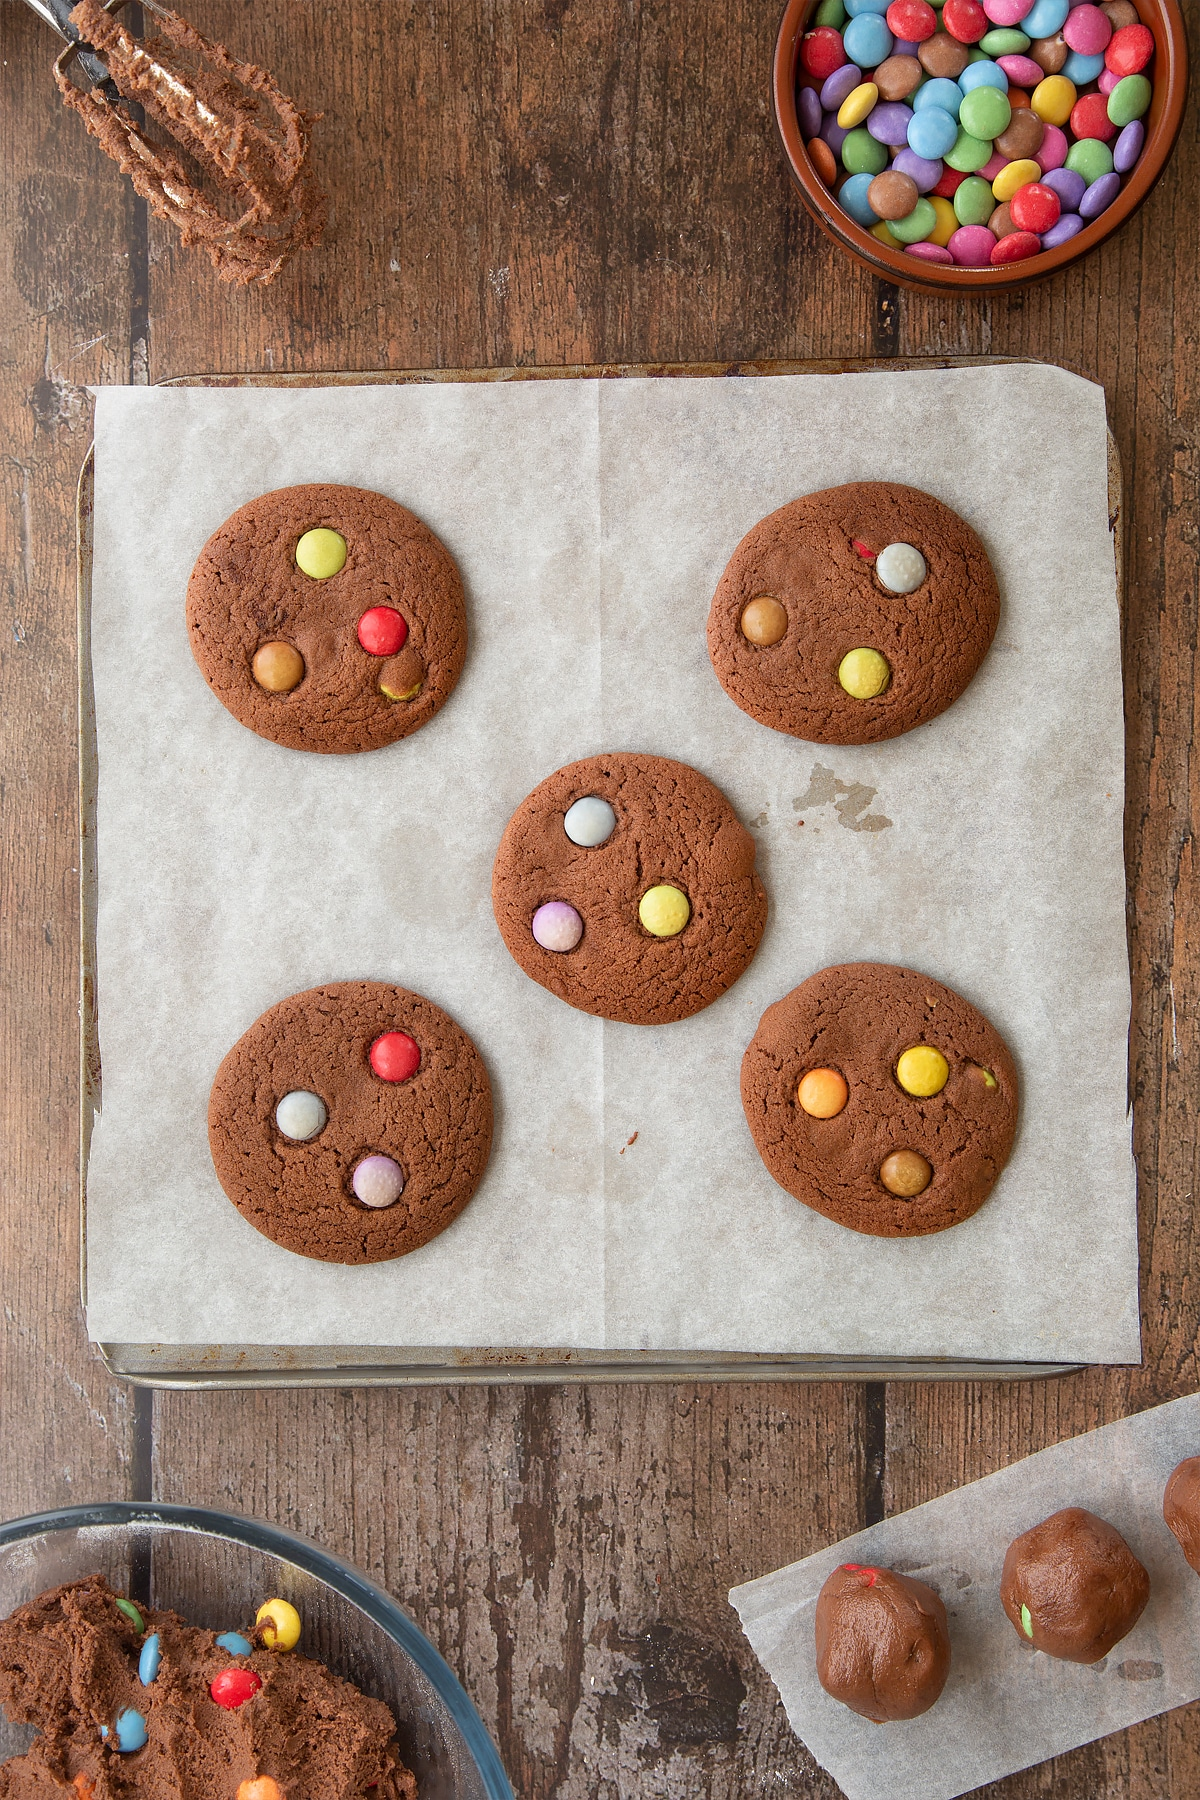 Freshly baked Smartie cookies on a baking tray lined with baking paper. Ingredients to make the Smartie cookie recipe surround the tray.